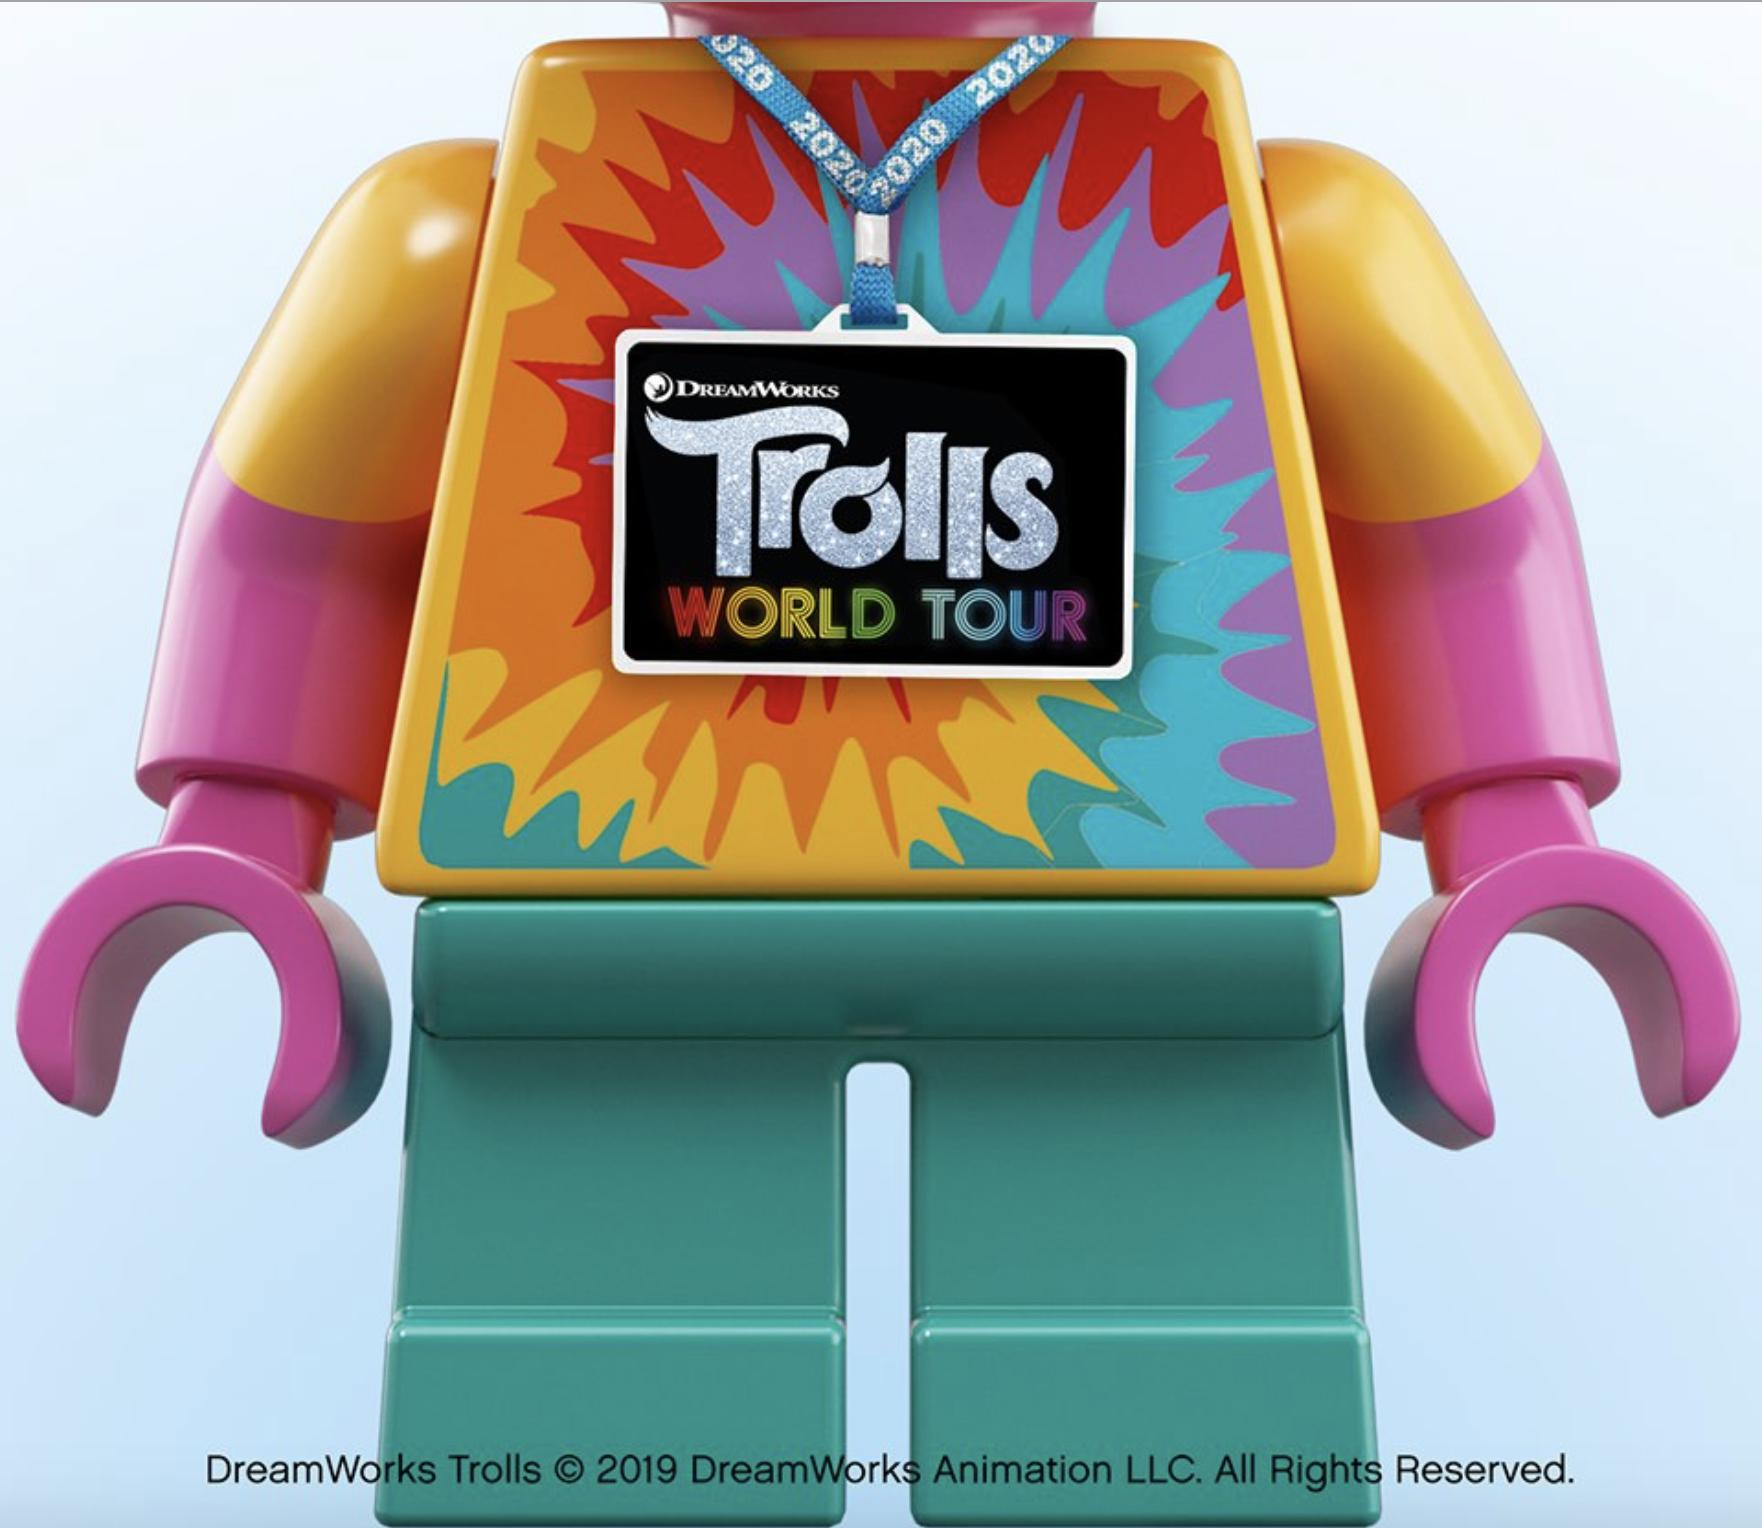 Best Lego Sets To Invest In 2020 Trolls World Tour sets possibly coming in 2020! | Brickset: LEGO